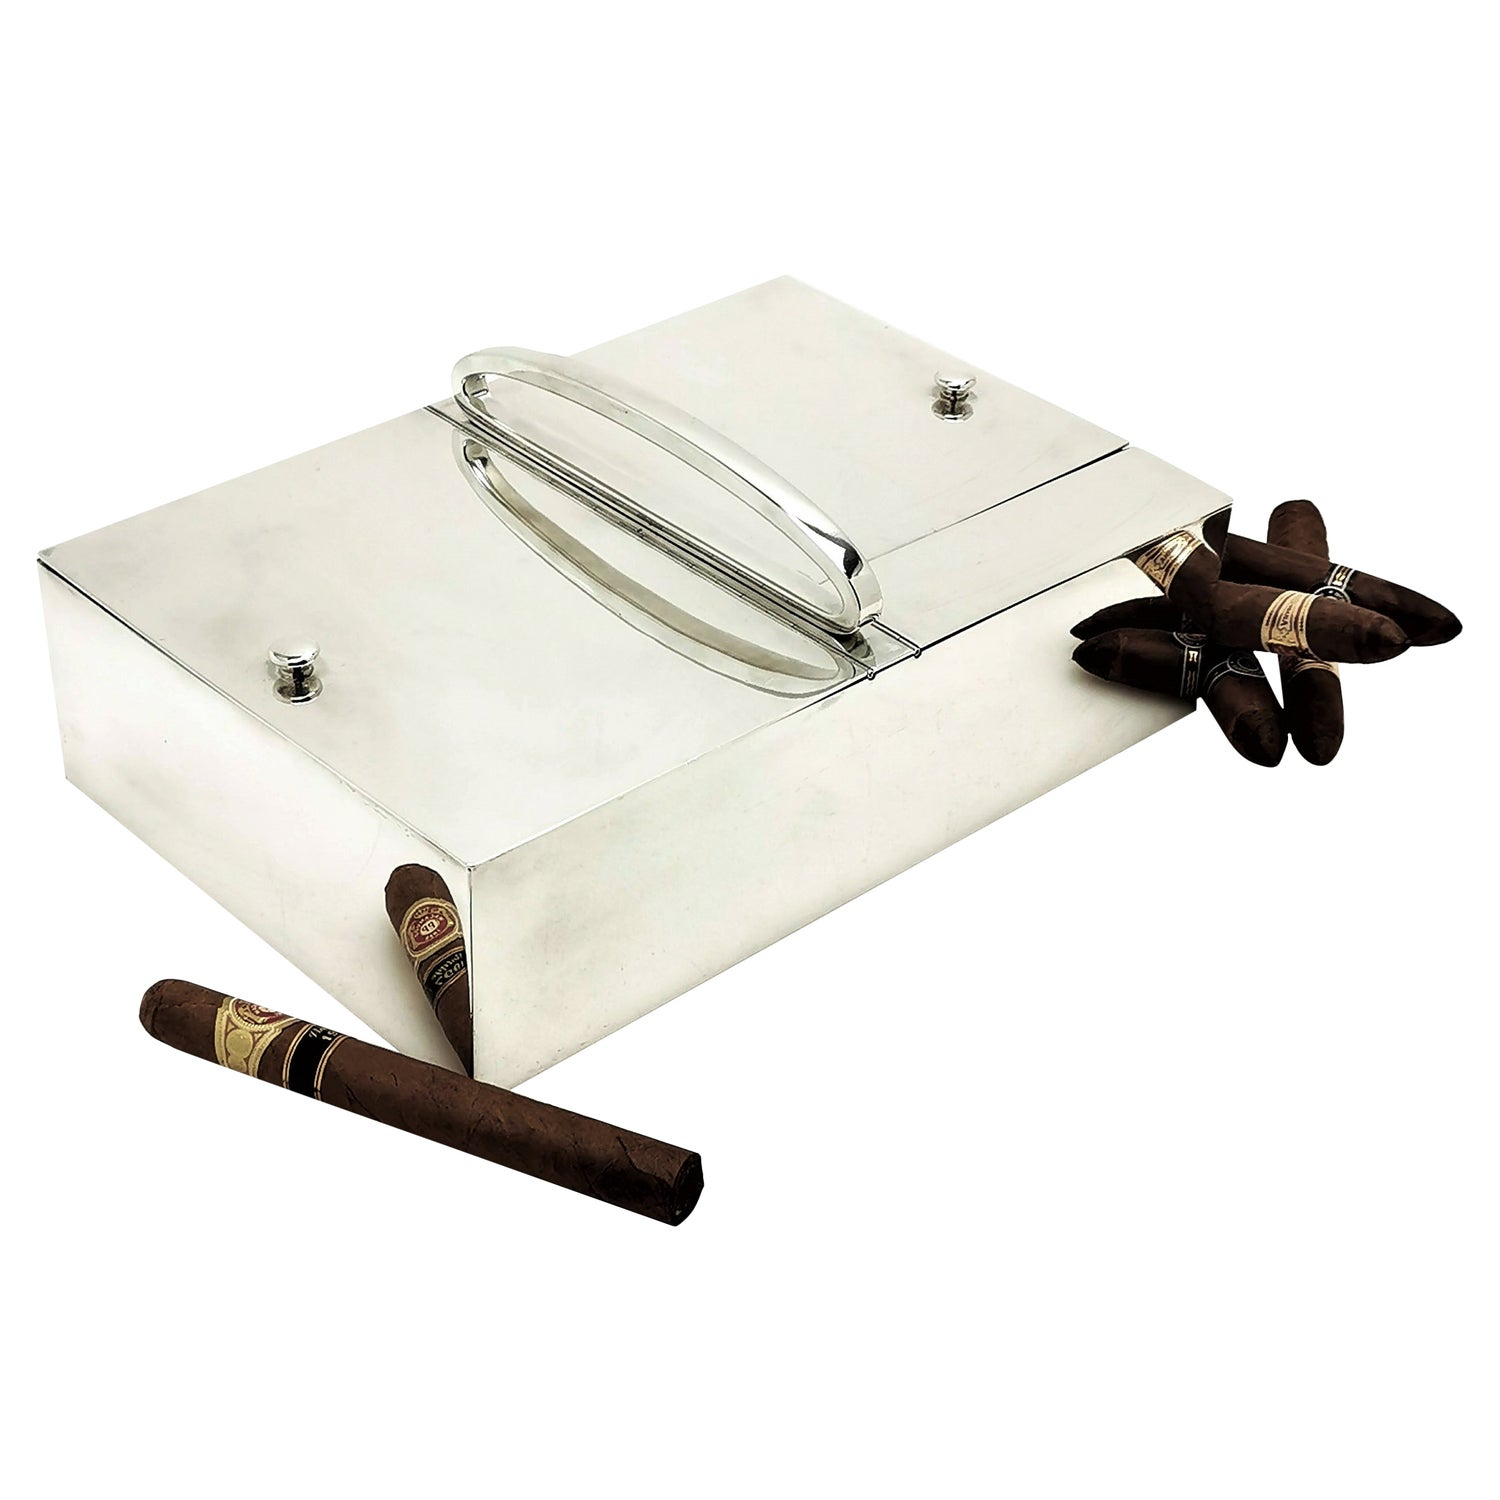 Large Antique French Solid Silver Cigar Box Cigarette Smokers Companion c. 1910